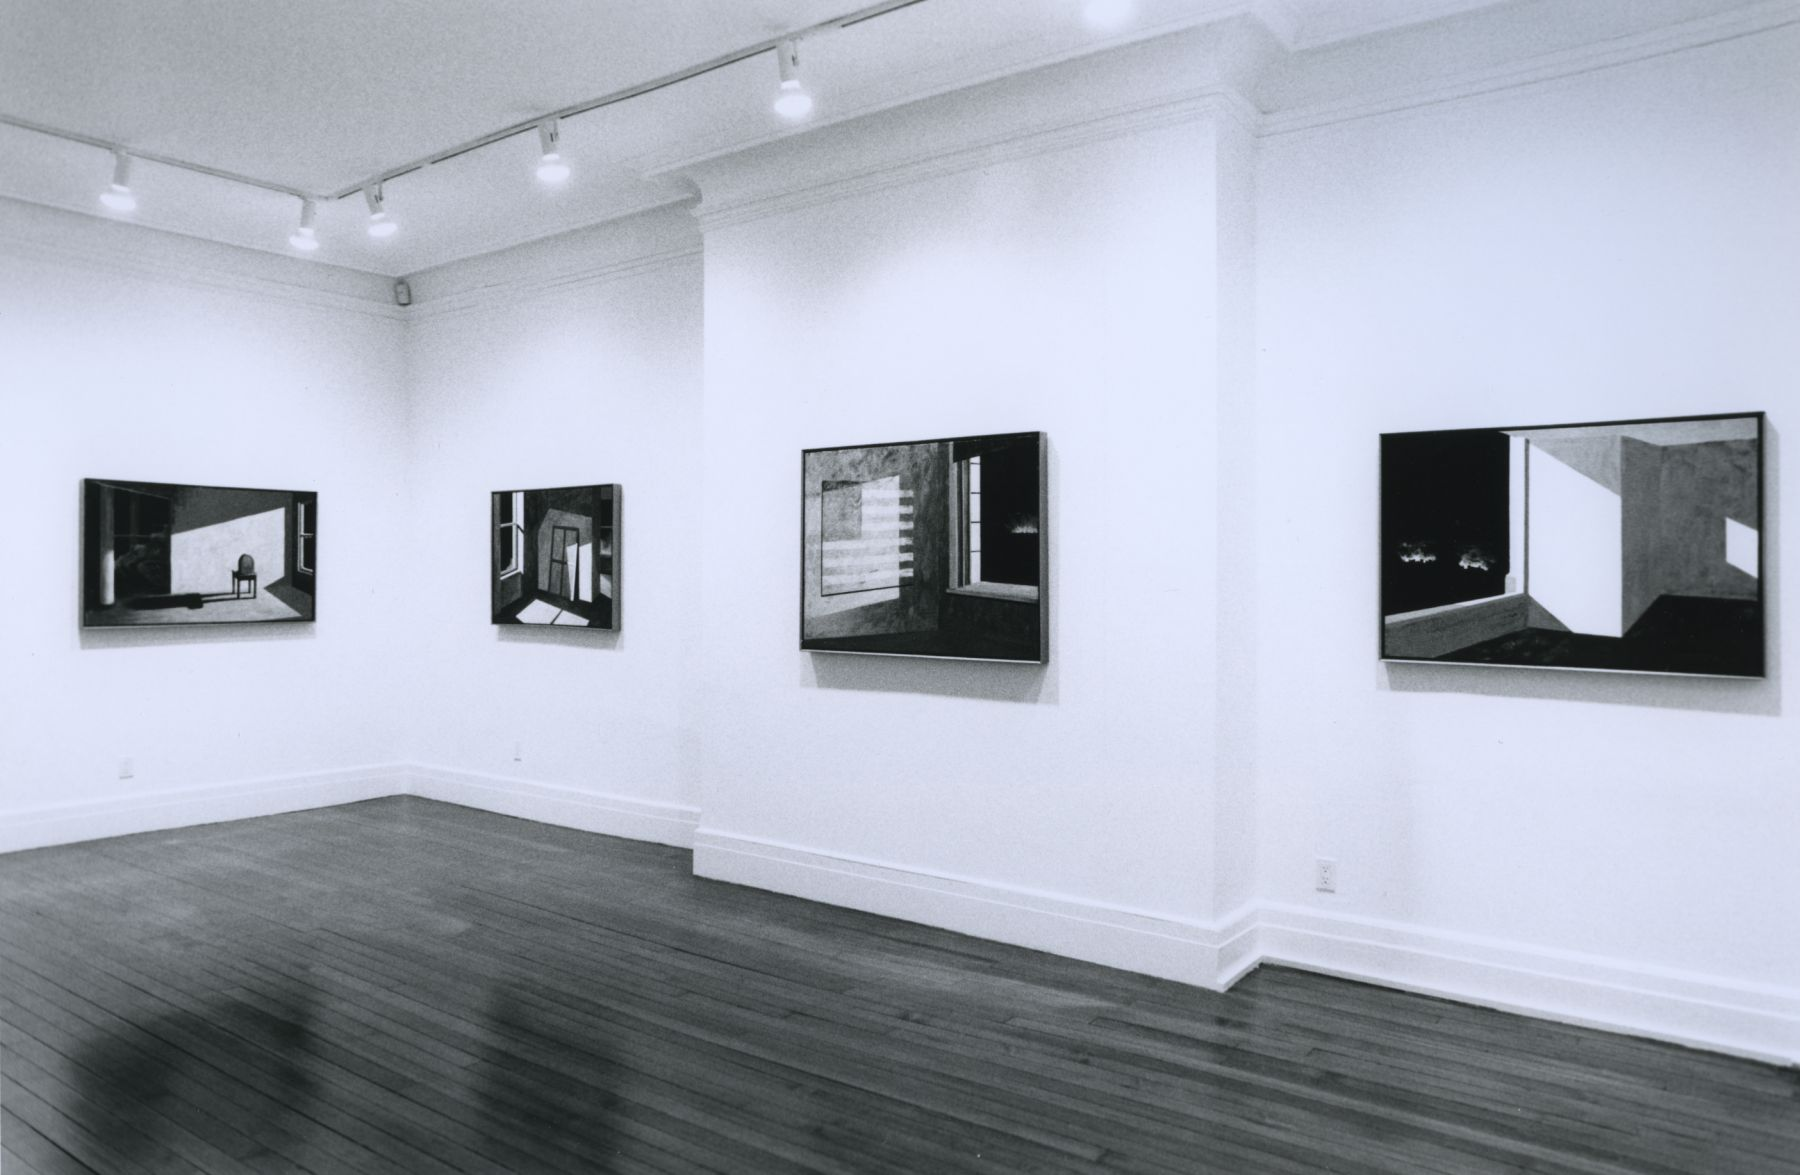 Installation view, Robert Morris: Small Fires and Mnemonic Nights, 18 EAST 77.